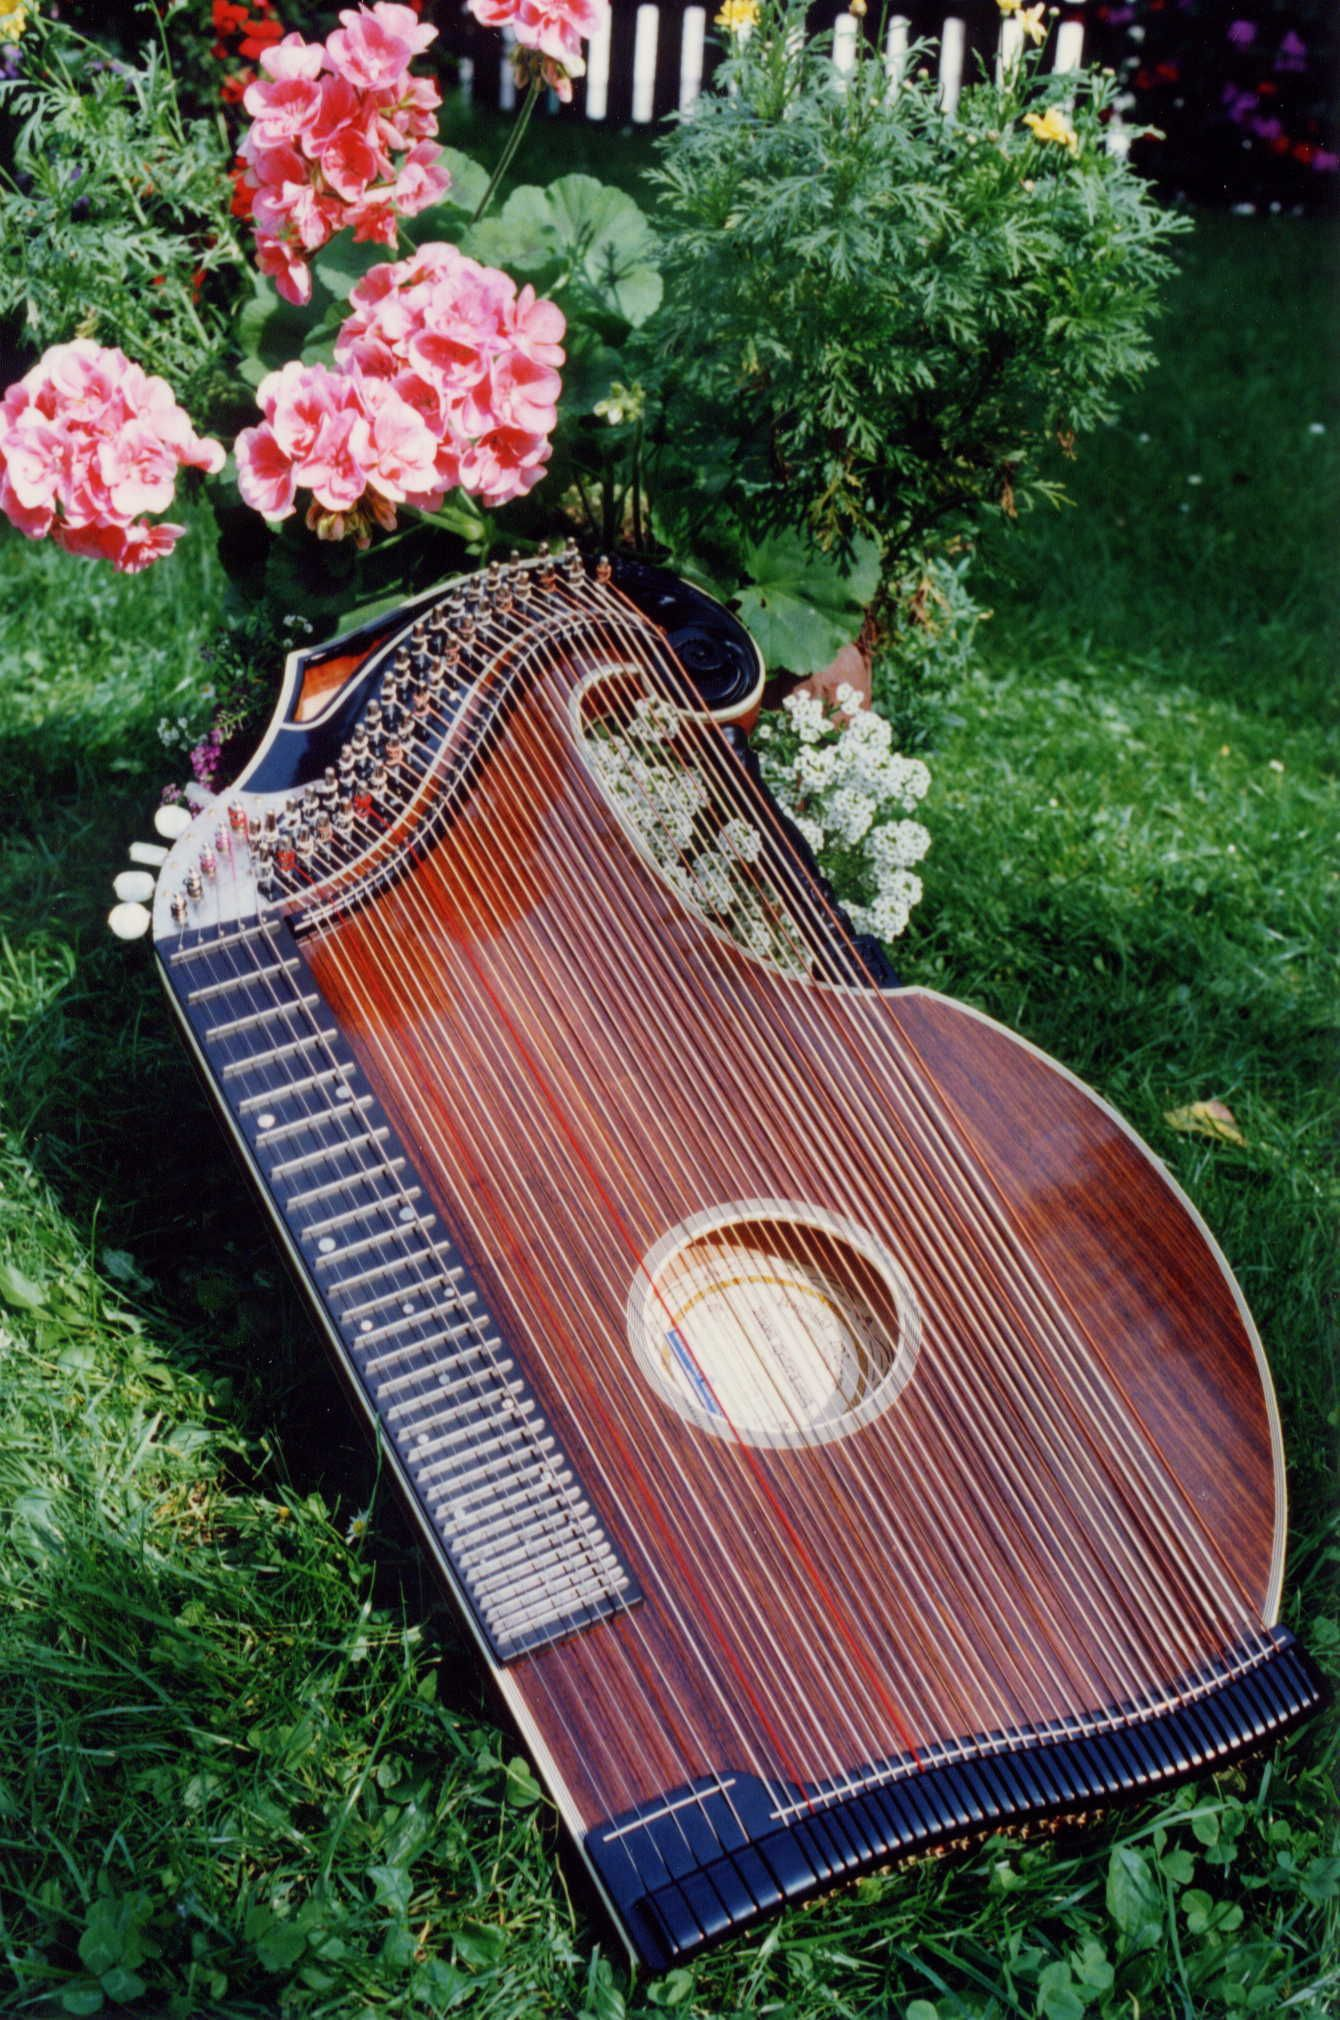 Zither Modell